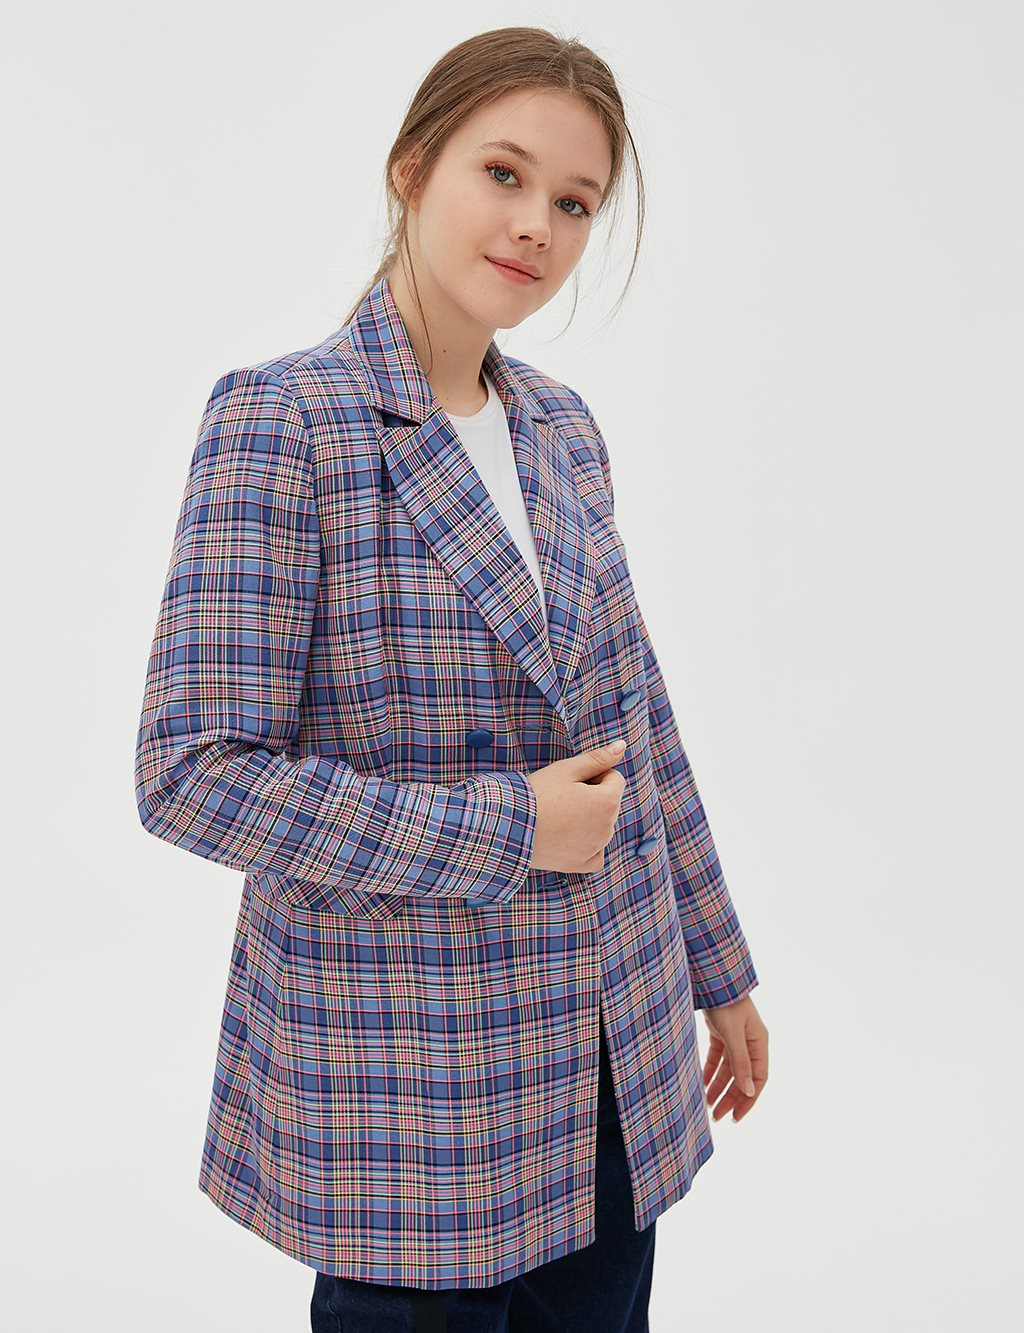 Checkered Blazer Jacket B20 13029 Blue